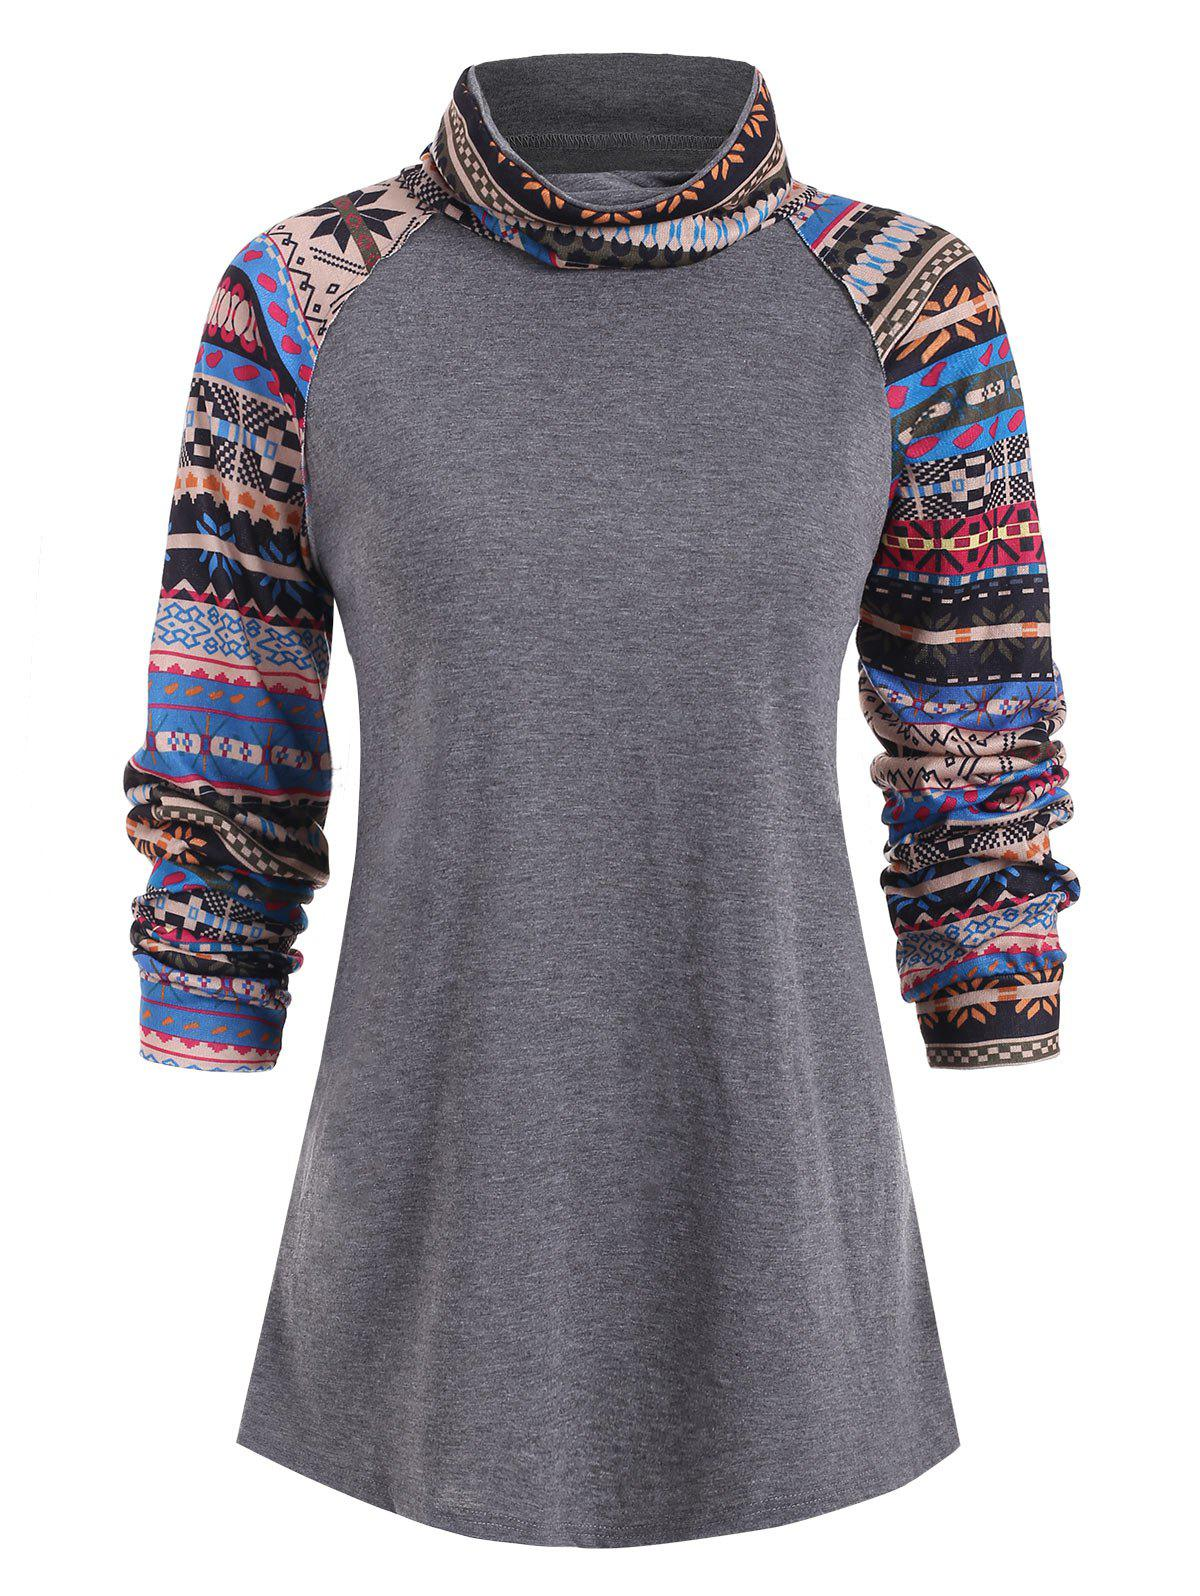 Fashion Turtle Neck Ethnic Print Top